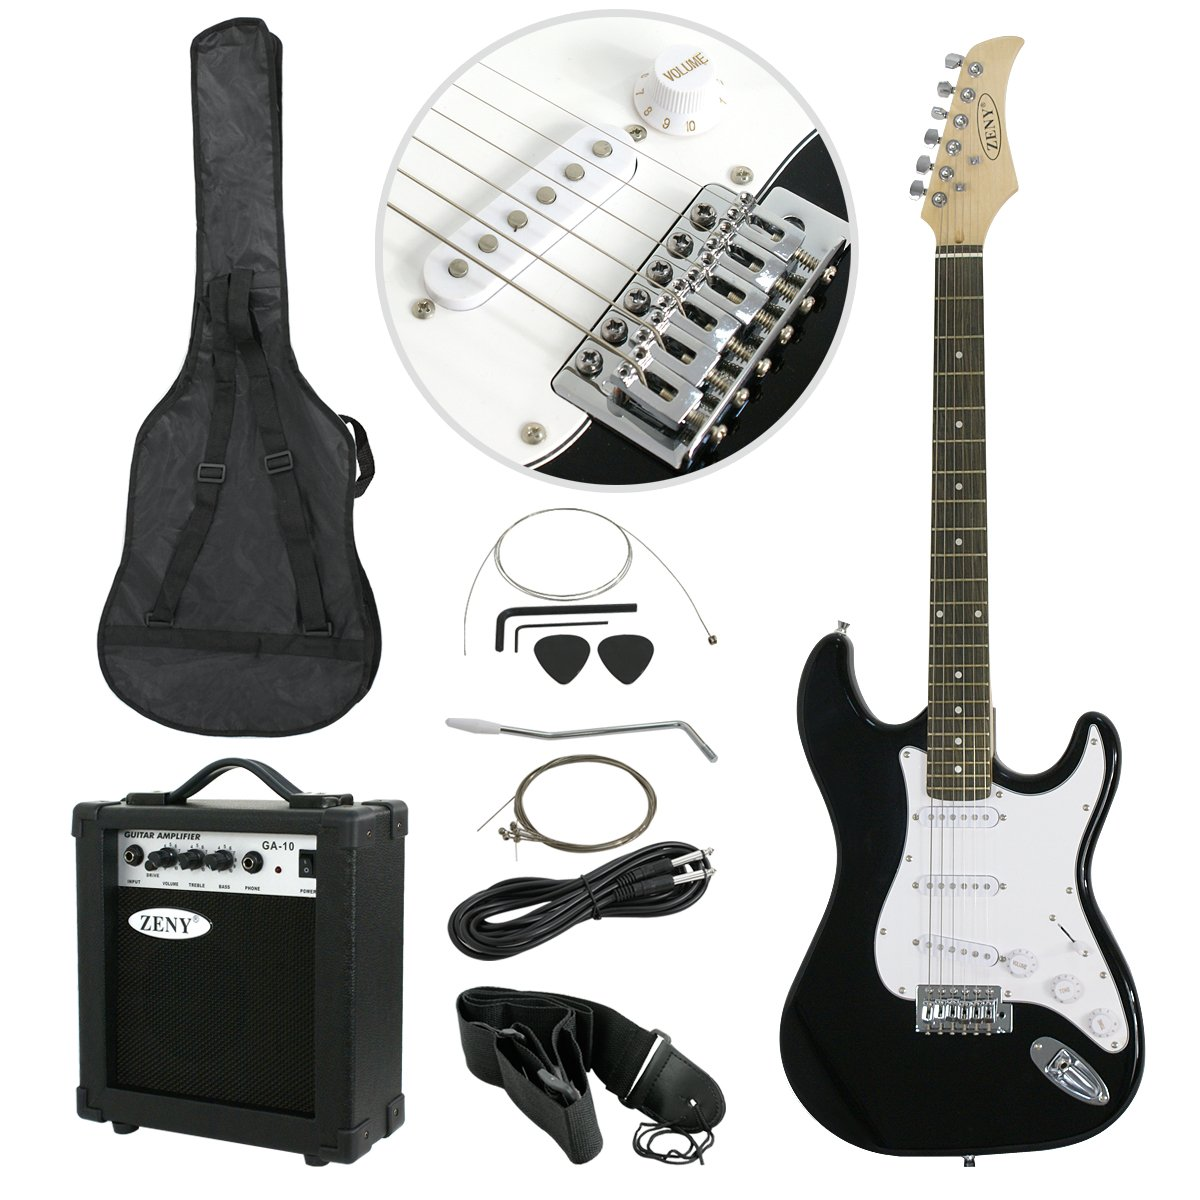 Showing all of the Contents for the Black ZENY Electric Guitar